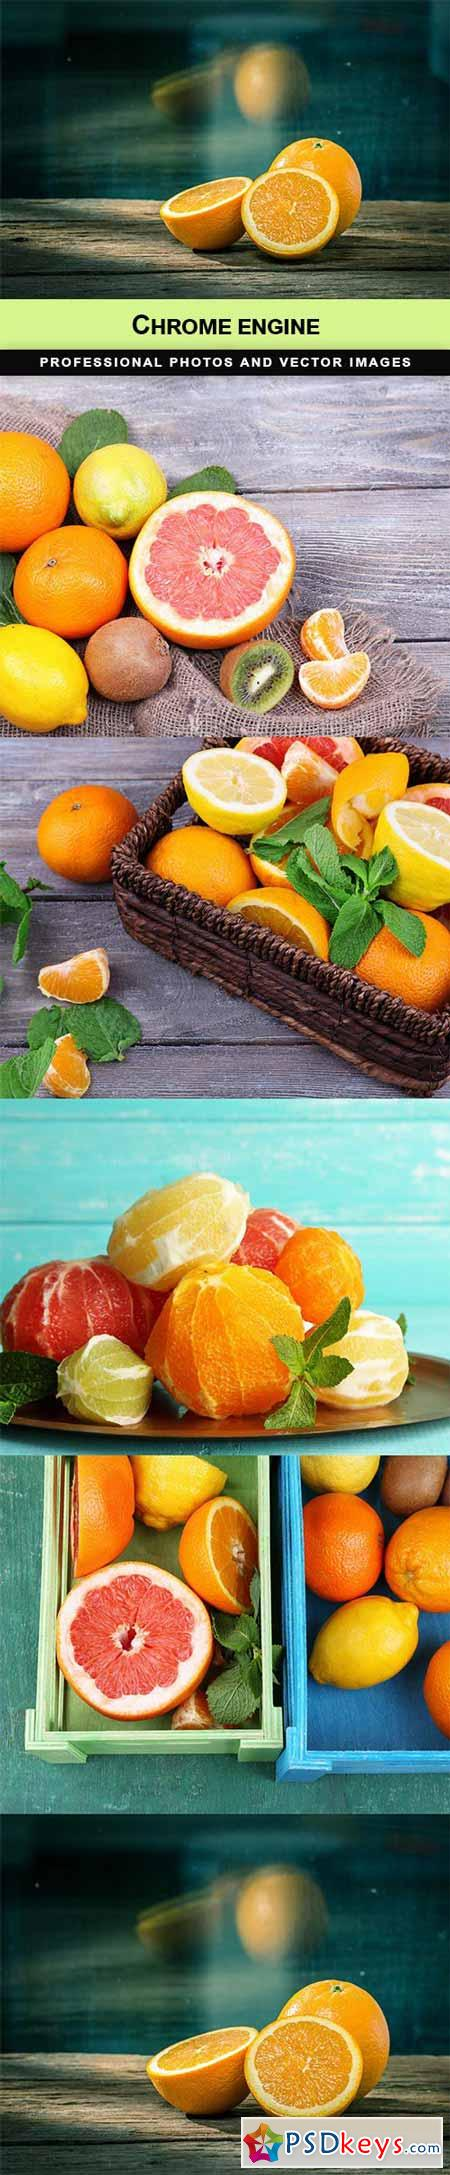 Citrus fruits - 5 UHQ JPEG